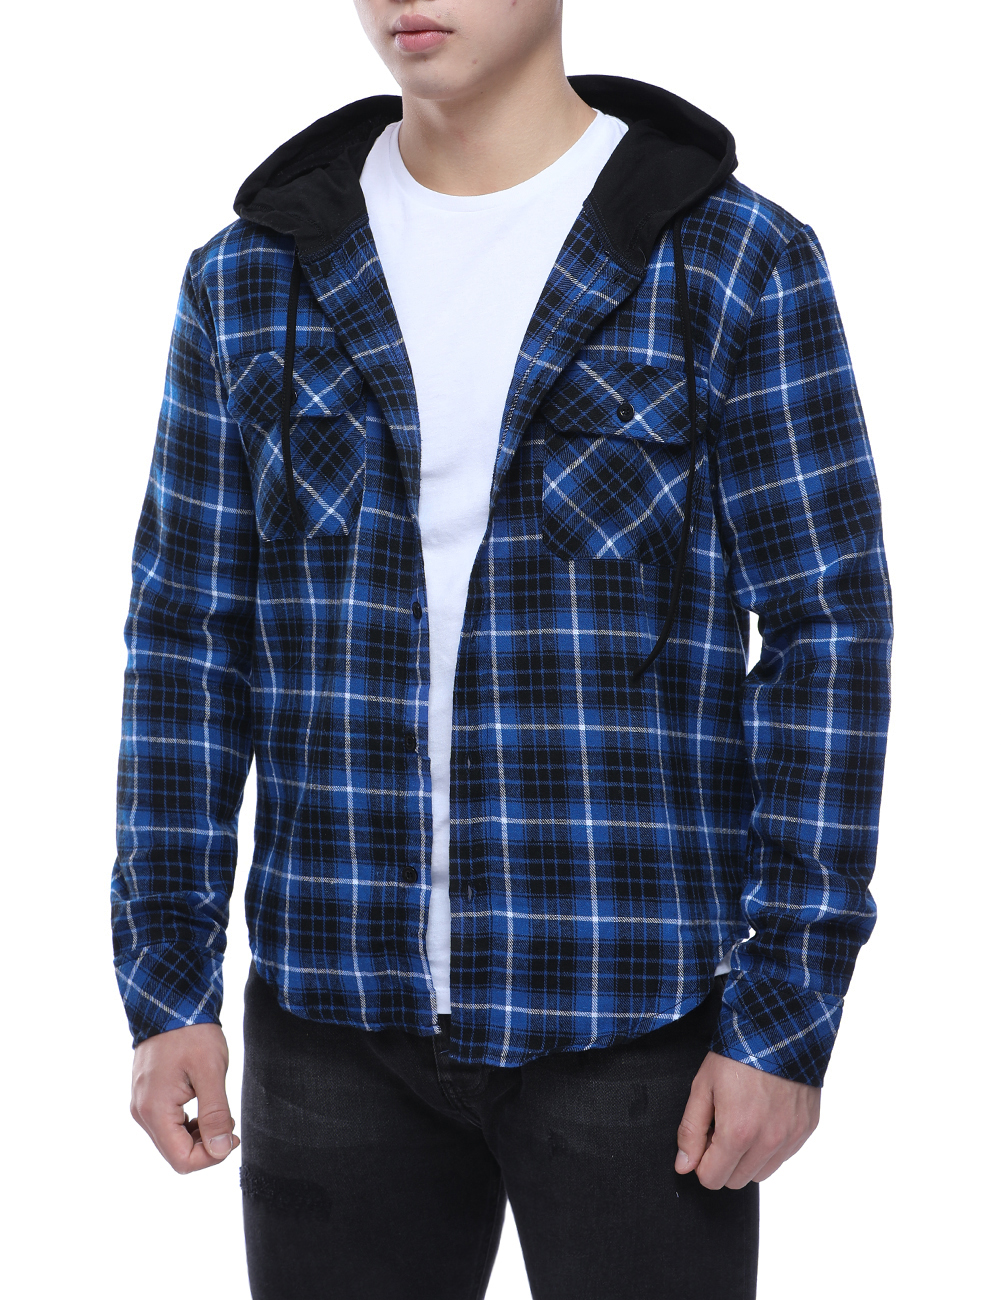 Men's Cotton Casual Plaid Shirts Pocket Long Sleeve Slim Fit Comfortable Hooded Shirt Leisure Styles Tops Shirt